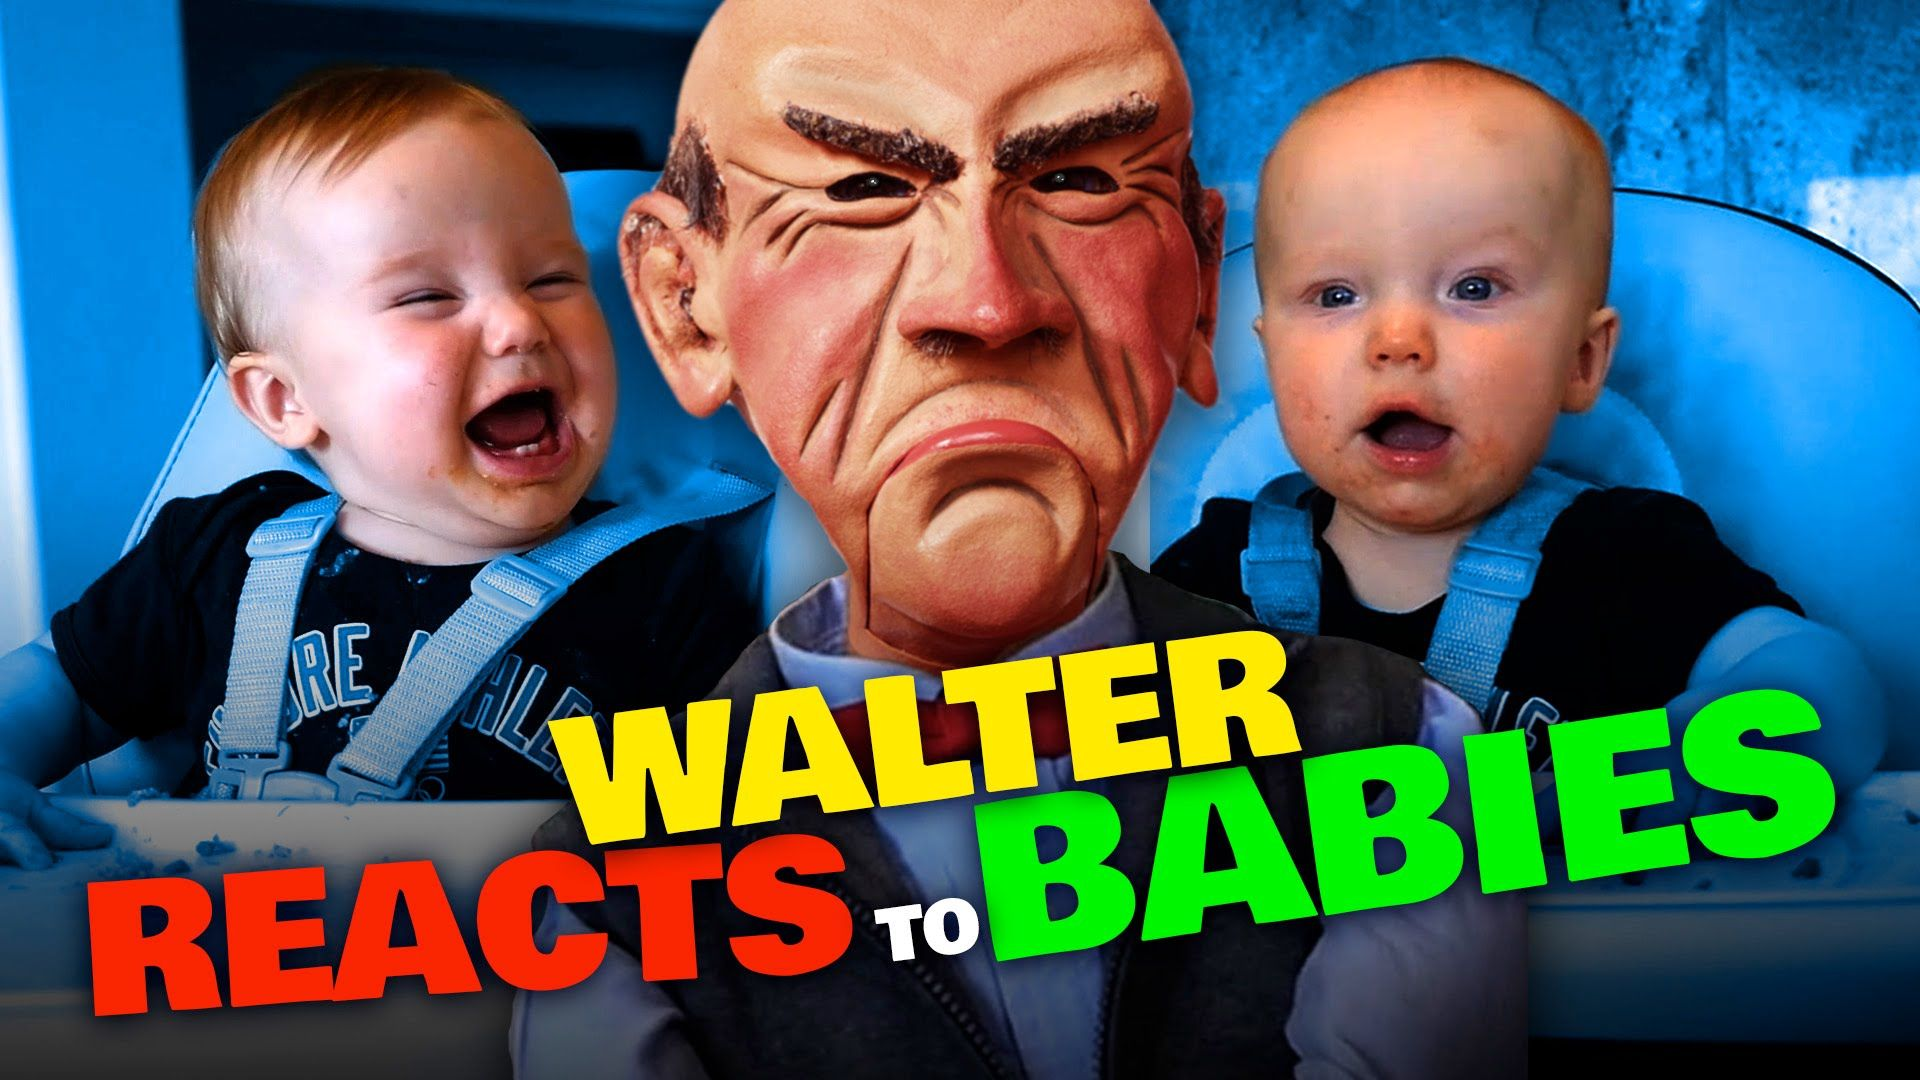 Walter reacts to the Twins | JEFF DUNHAM.... LOVE THIS ...